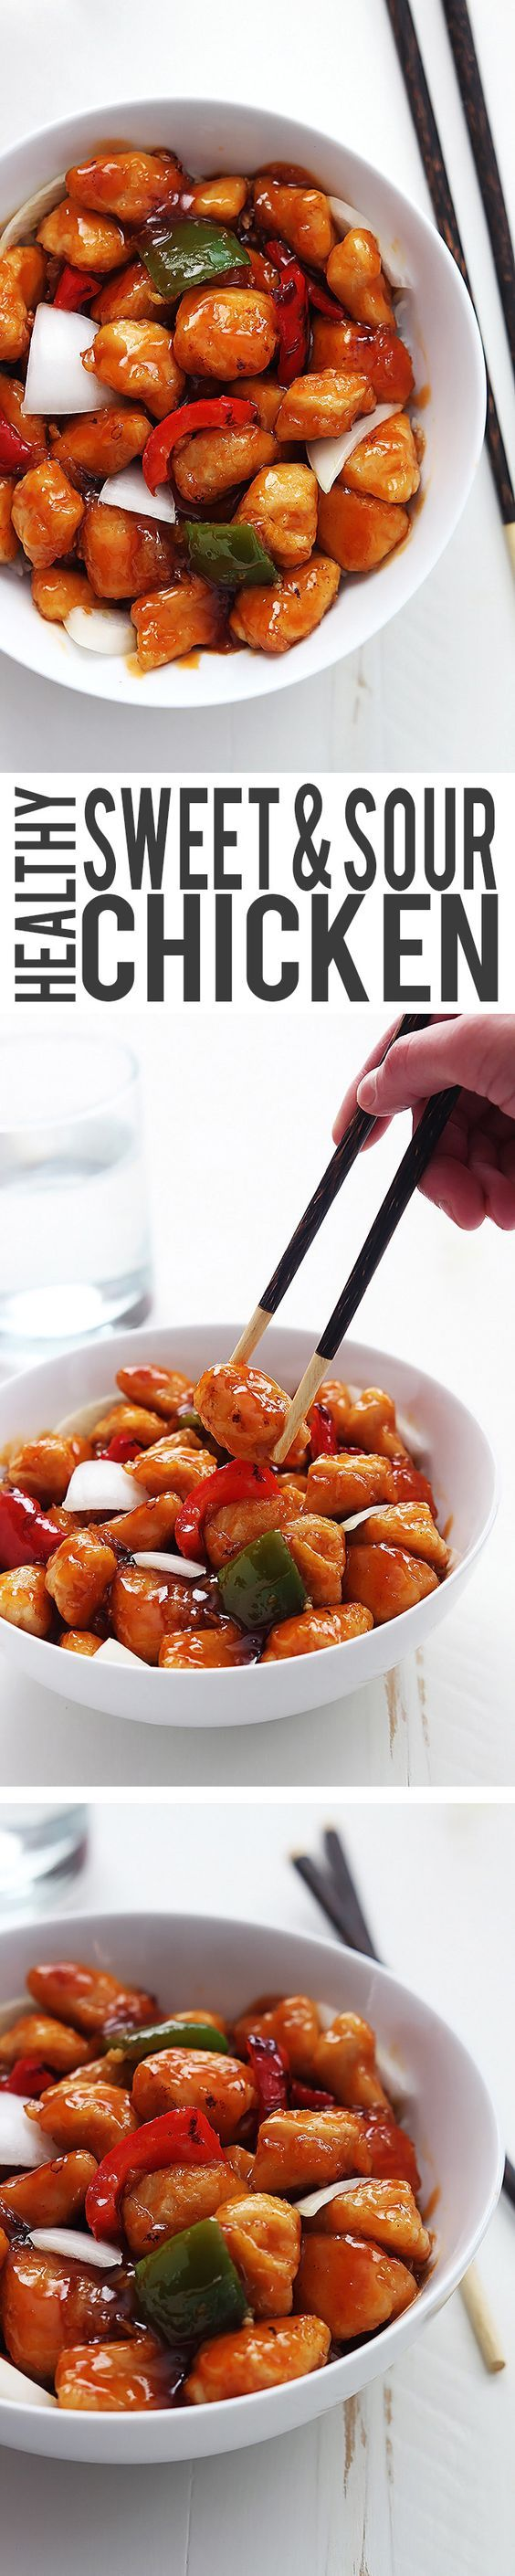 Healthy Sweet and Sour Chicken it's easy better tasting than takeout and ready in just 30 minutes.